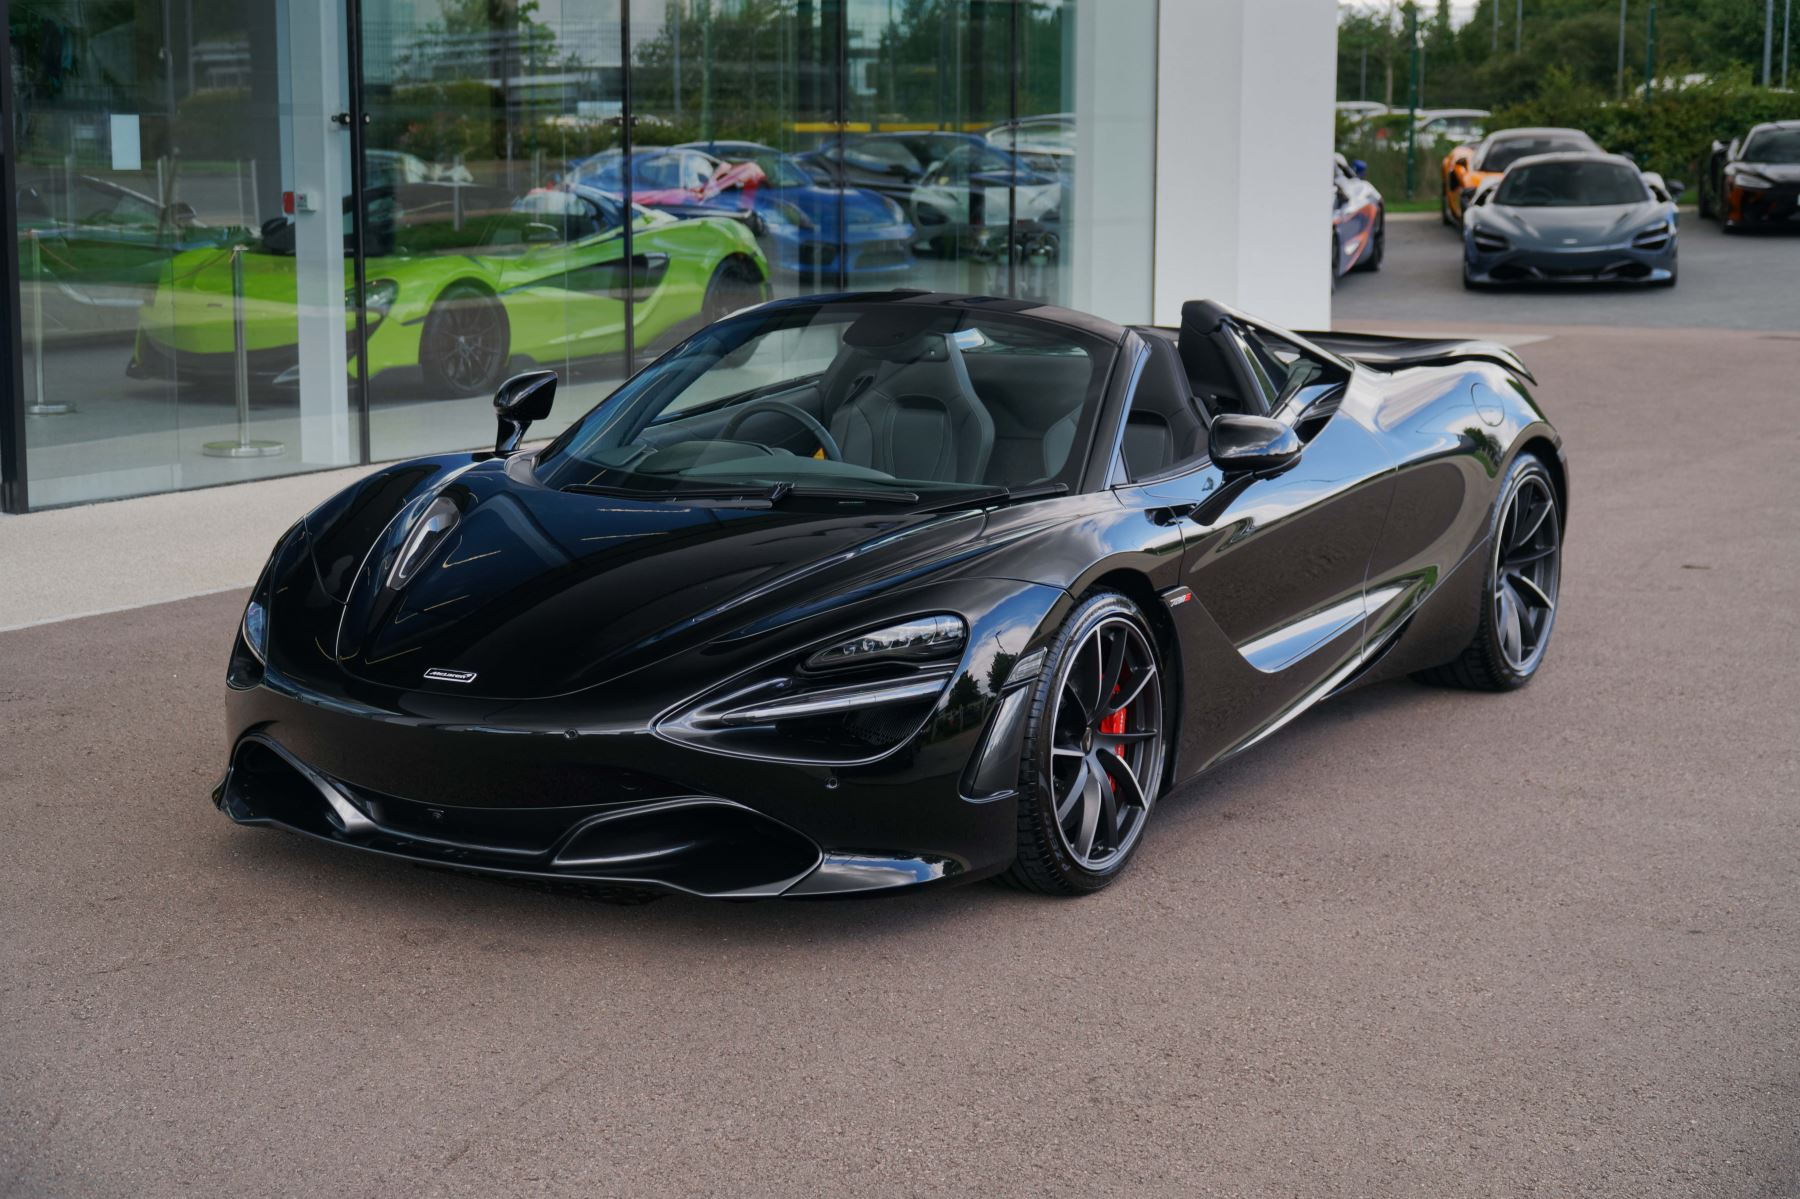 McLaren 720S Spider V8 2dr SSG 4.0 Automatic Convertible (2020) image